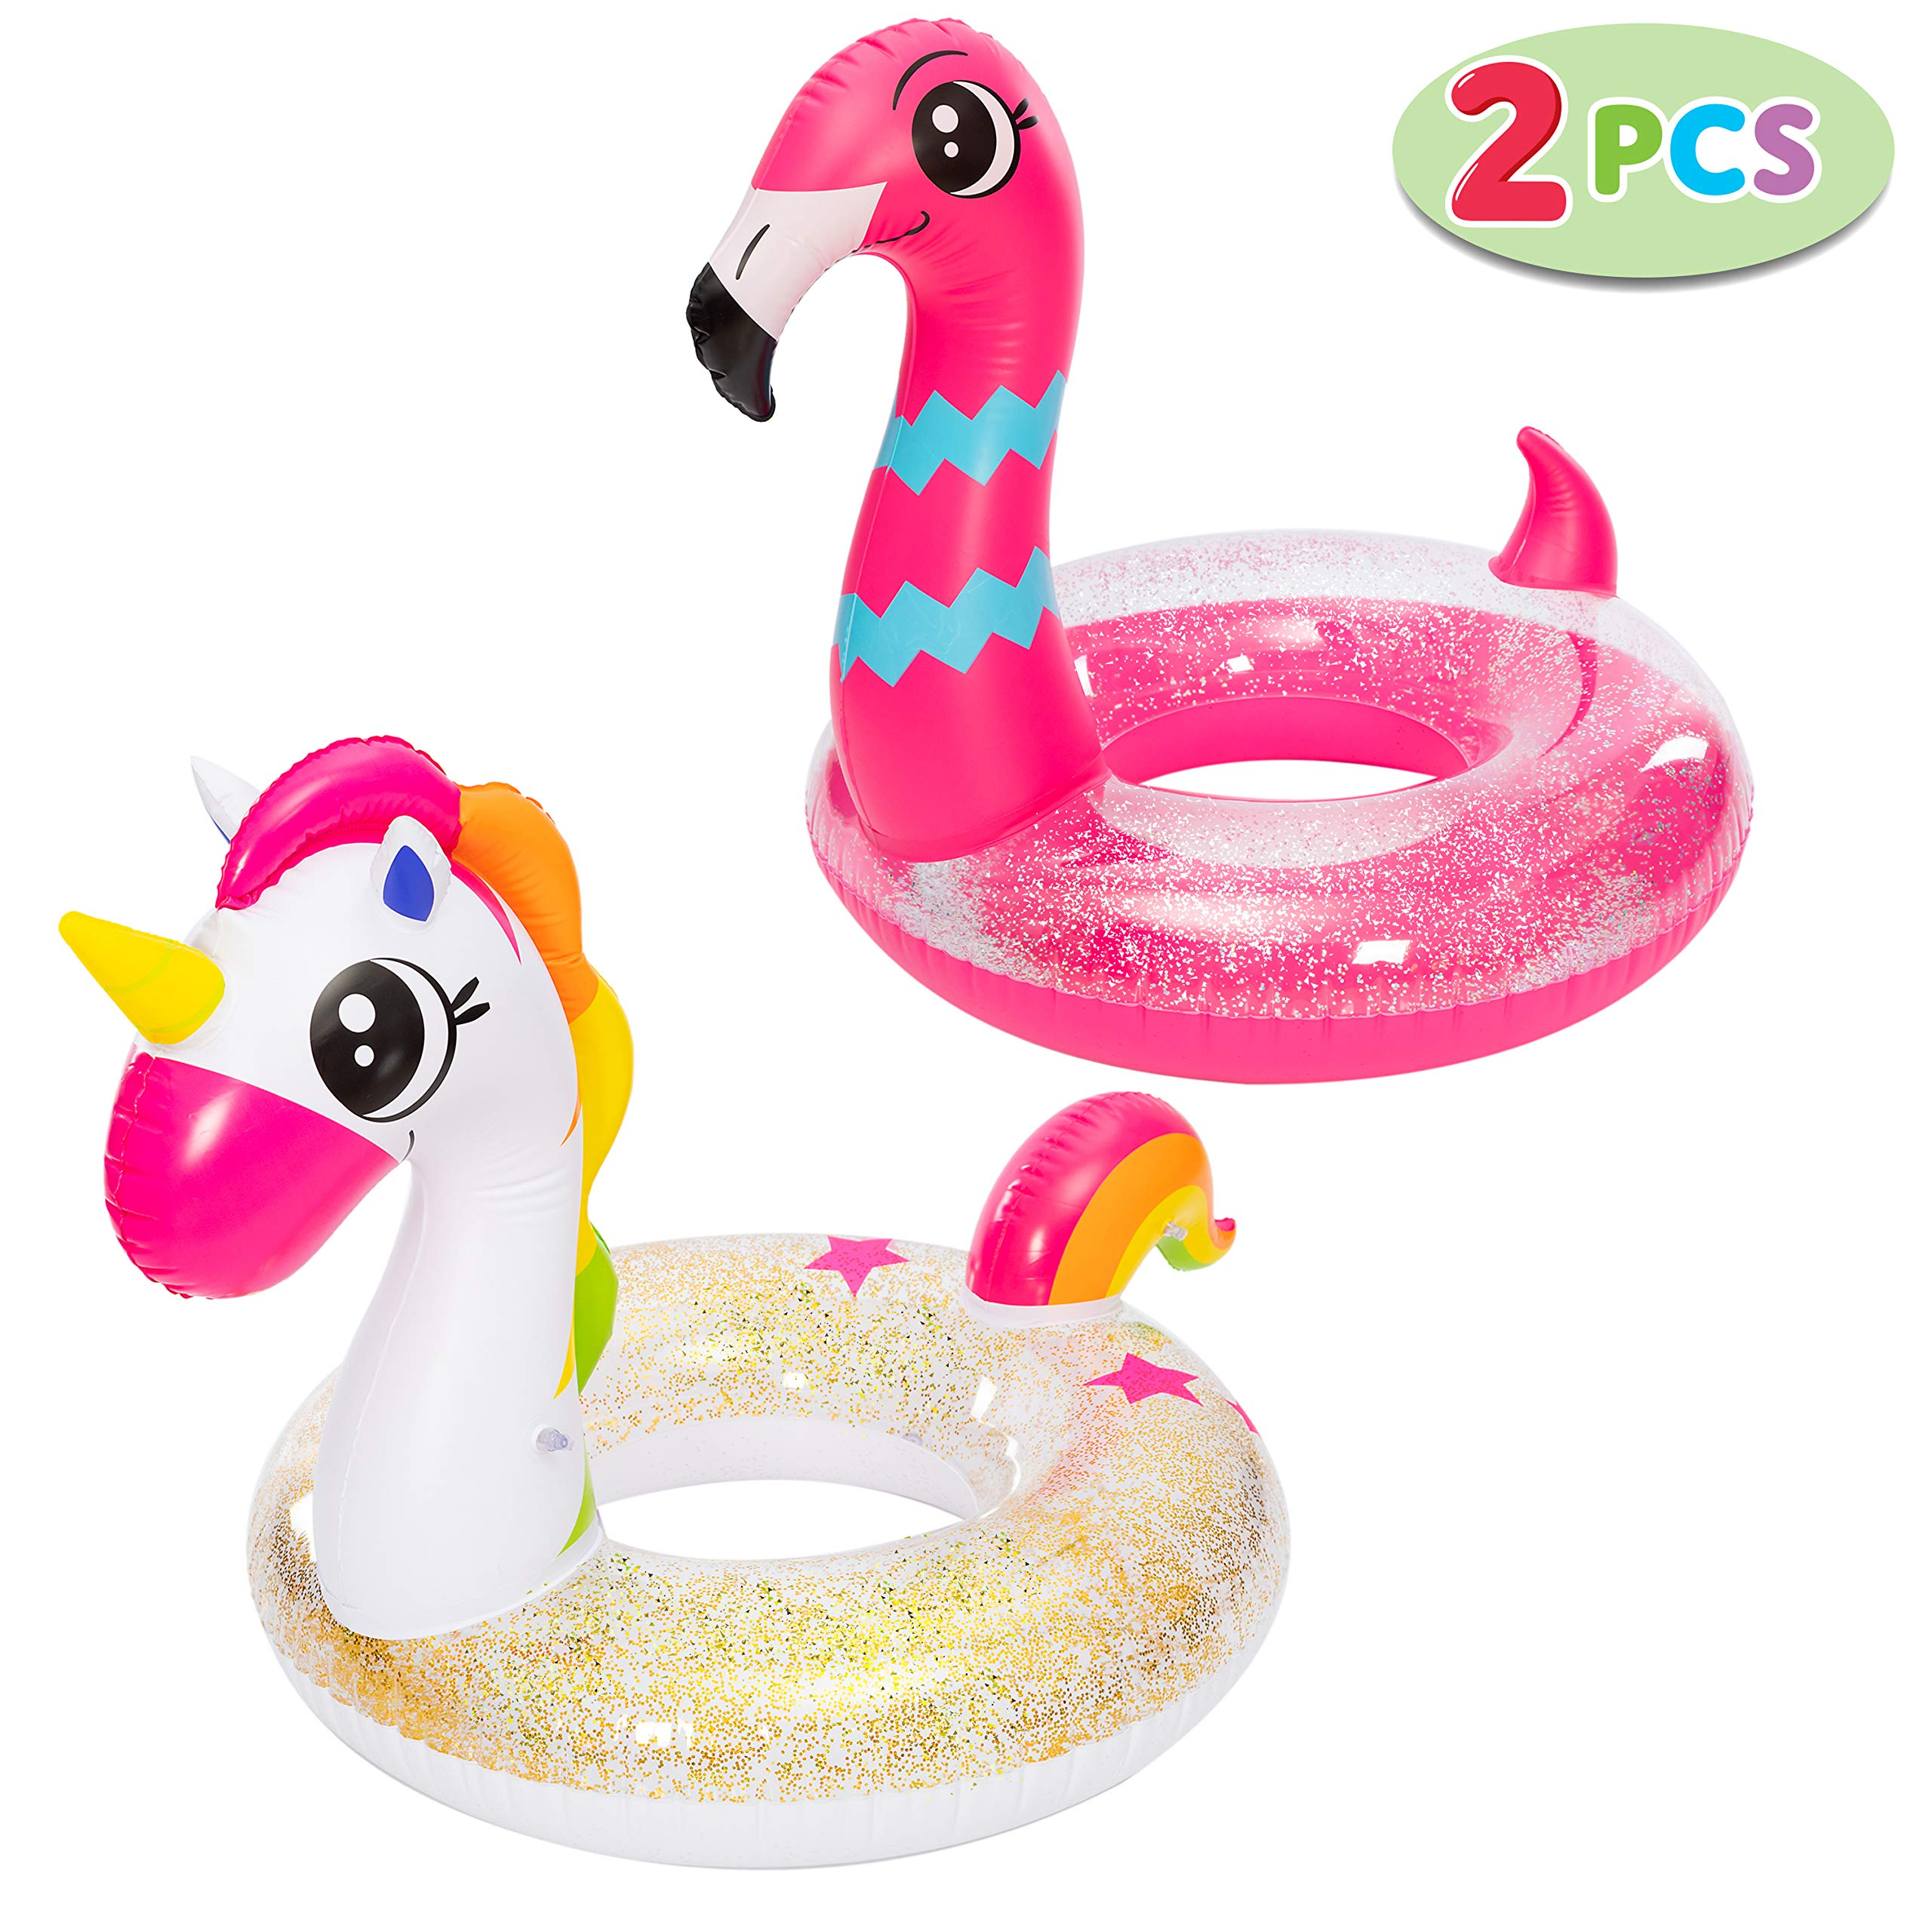 """JOYIN Inflatable Unicorn & Flamingo Pool Float with Glitters 35.5"""" (2 Sets), Pool Tubes for Floating, Fun Beach Floaties, Pool Toys, Summer Pool Party Decorations for Kids"""